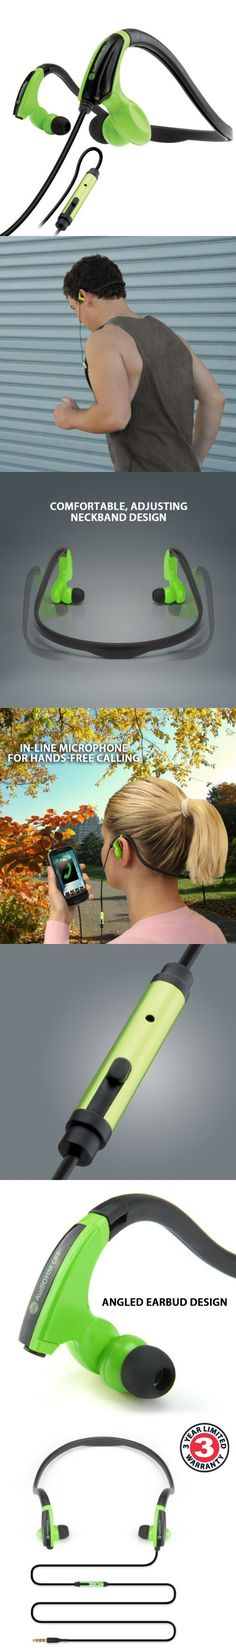 GOgroove AudiOHM CFT Green Sports Fitness Neckband Headphones for Running Jogging Hiking Cycling Gym - Works with Sony Xperia Z3 , Motorola Moto G (2nd Gen) , Samsung Galaxy EDGE & more!